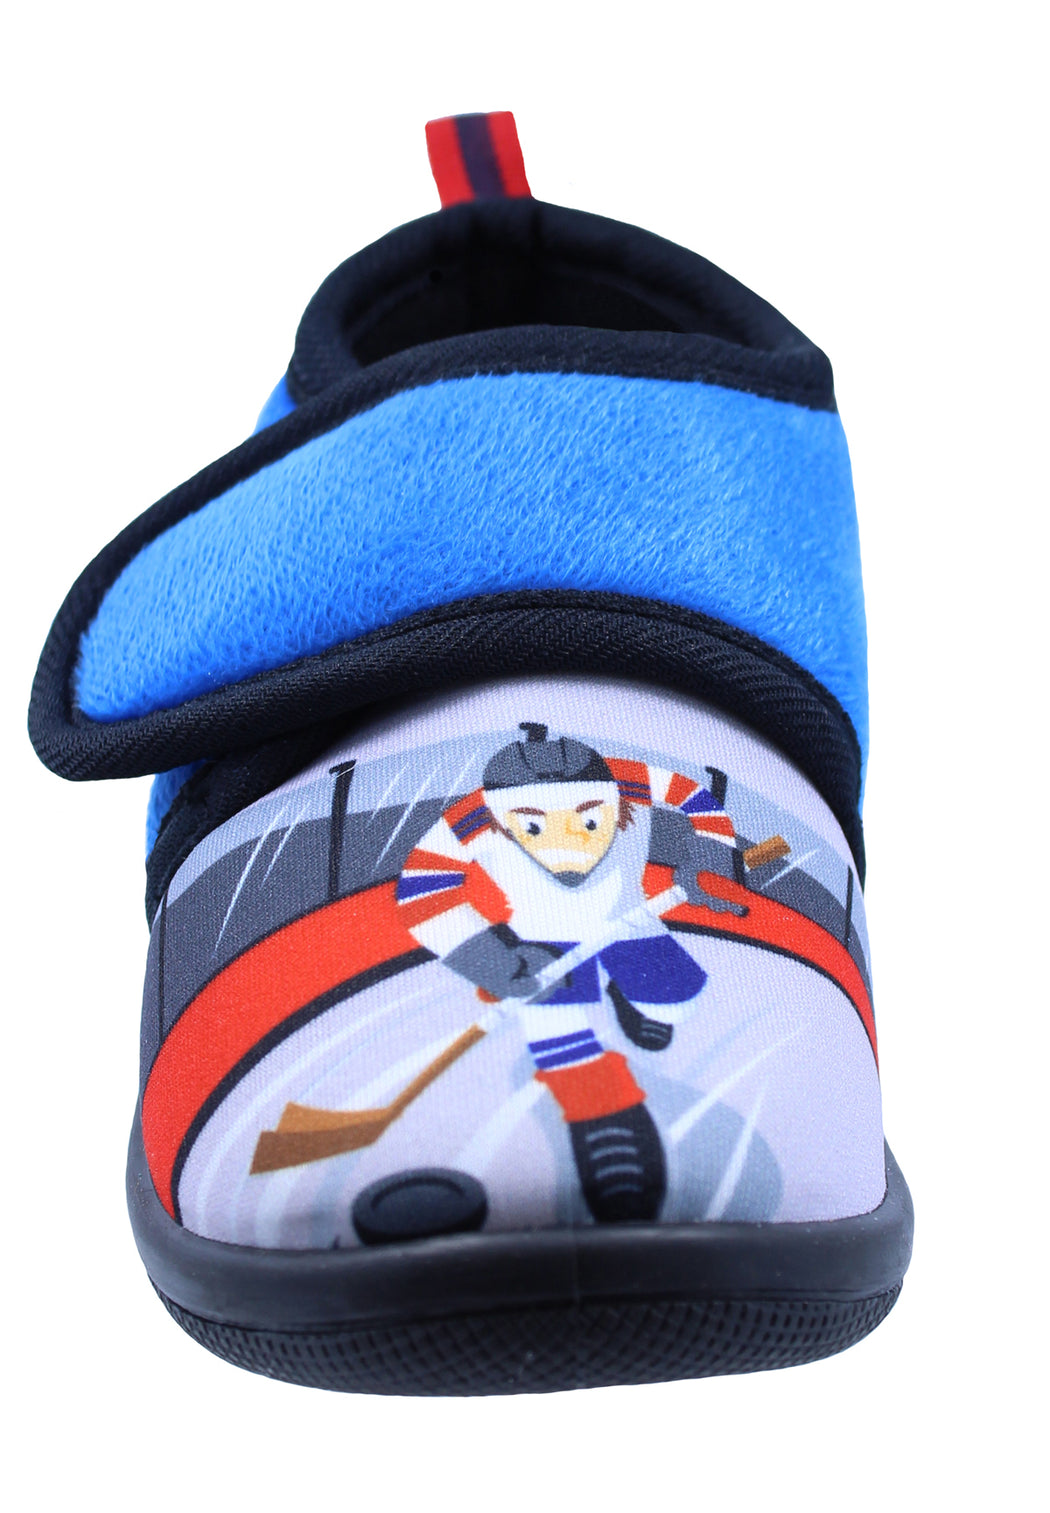 Toddler Boy's Hockey Daycare Slippers